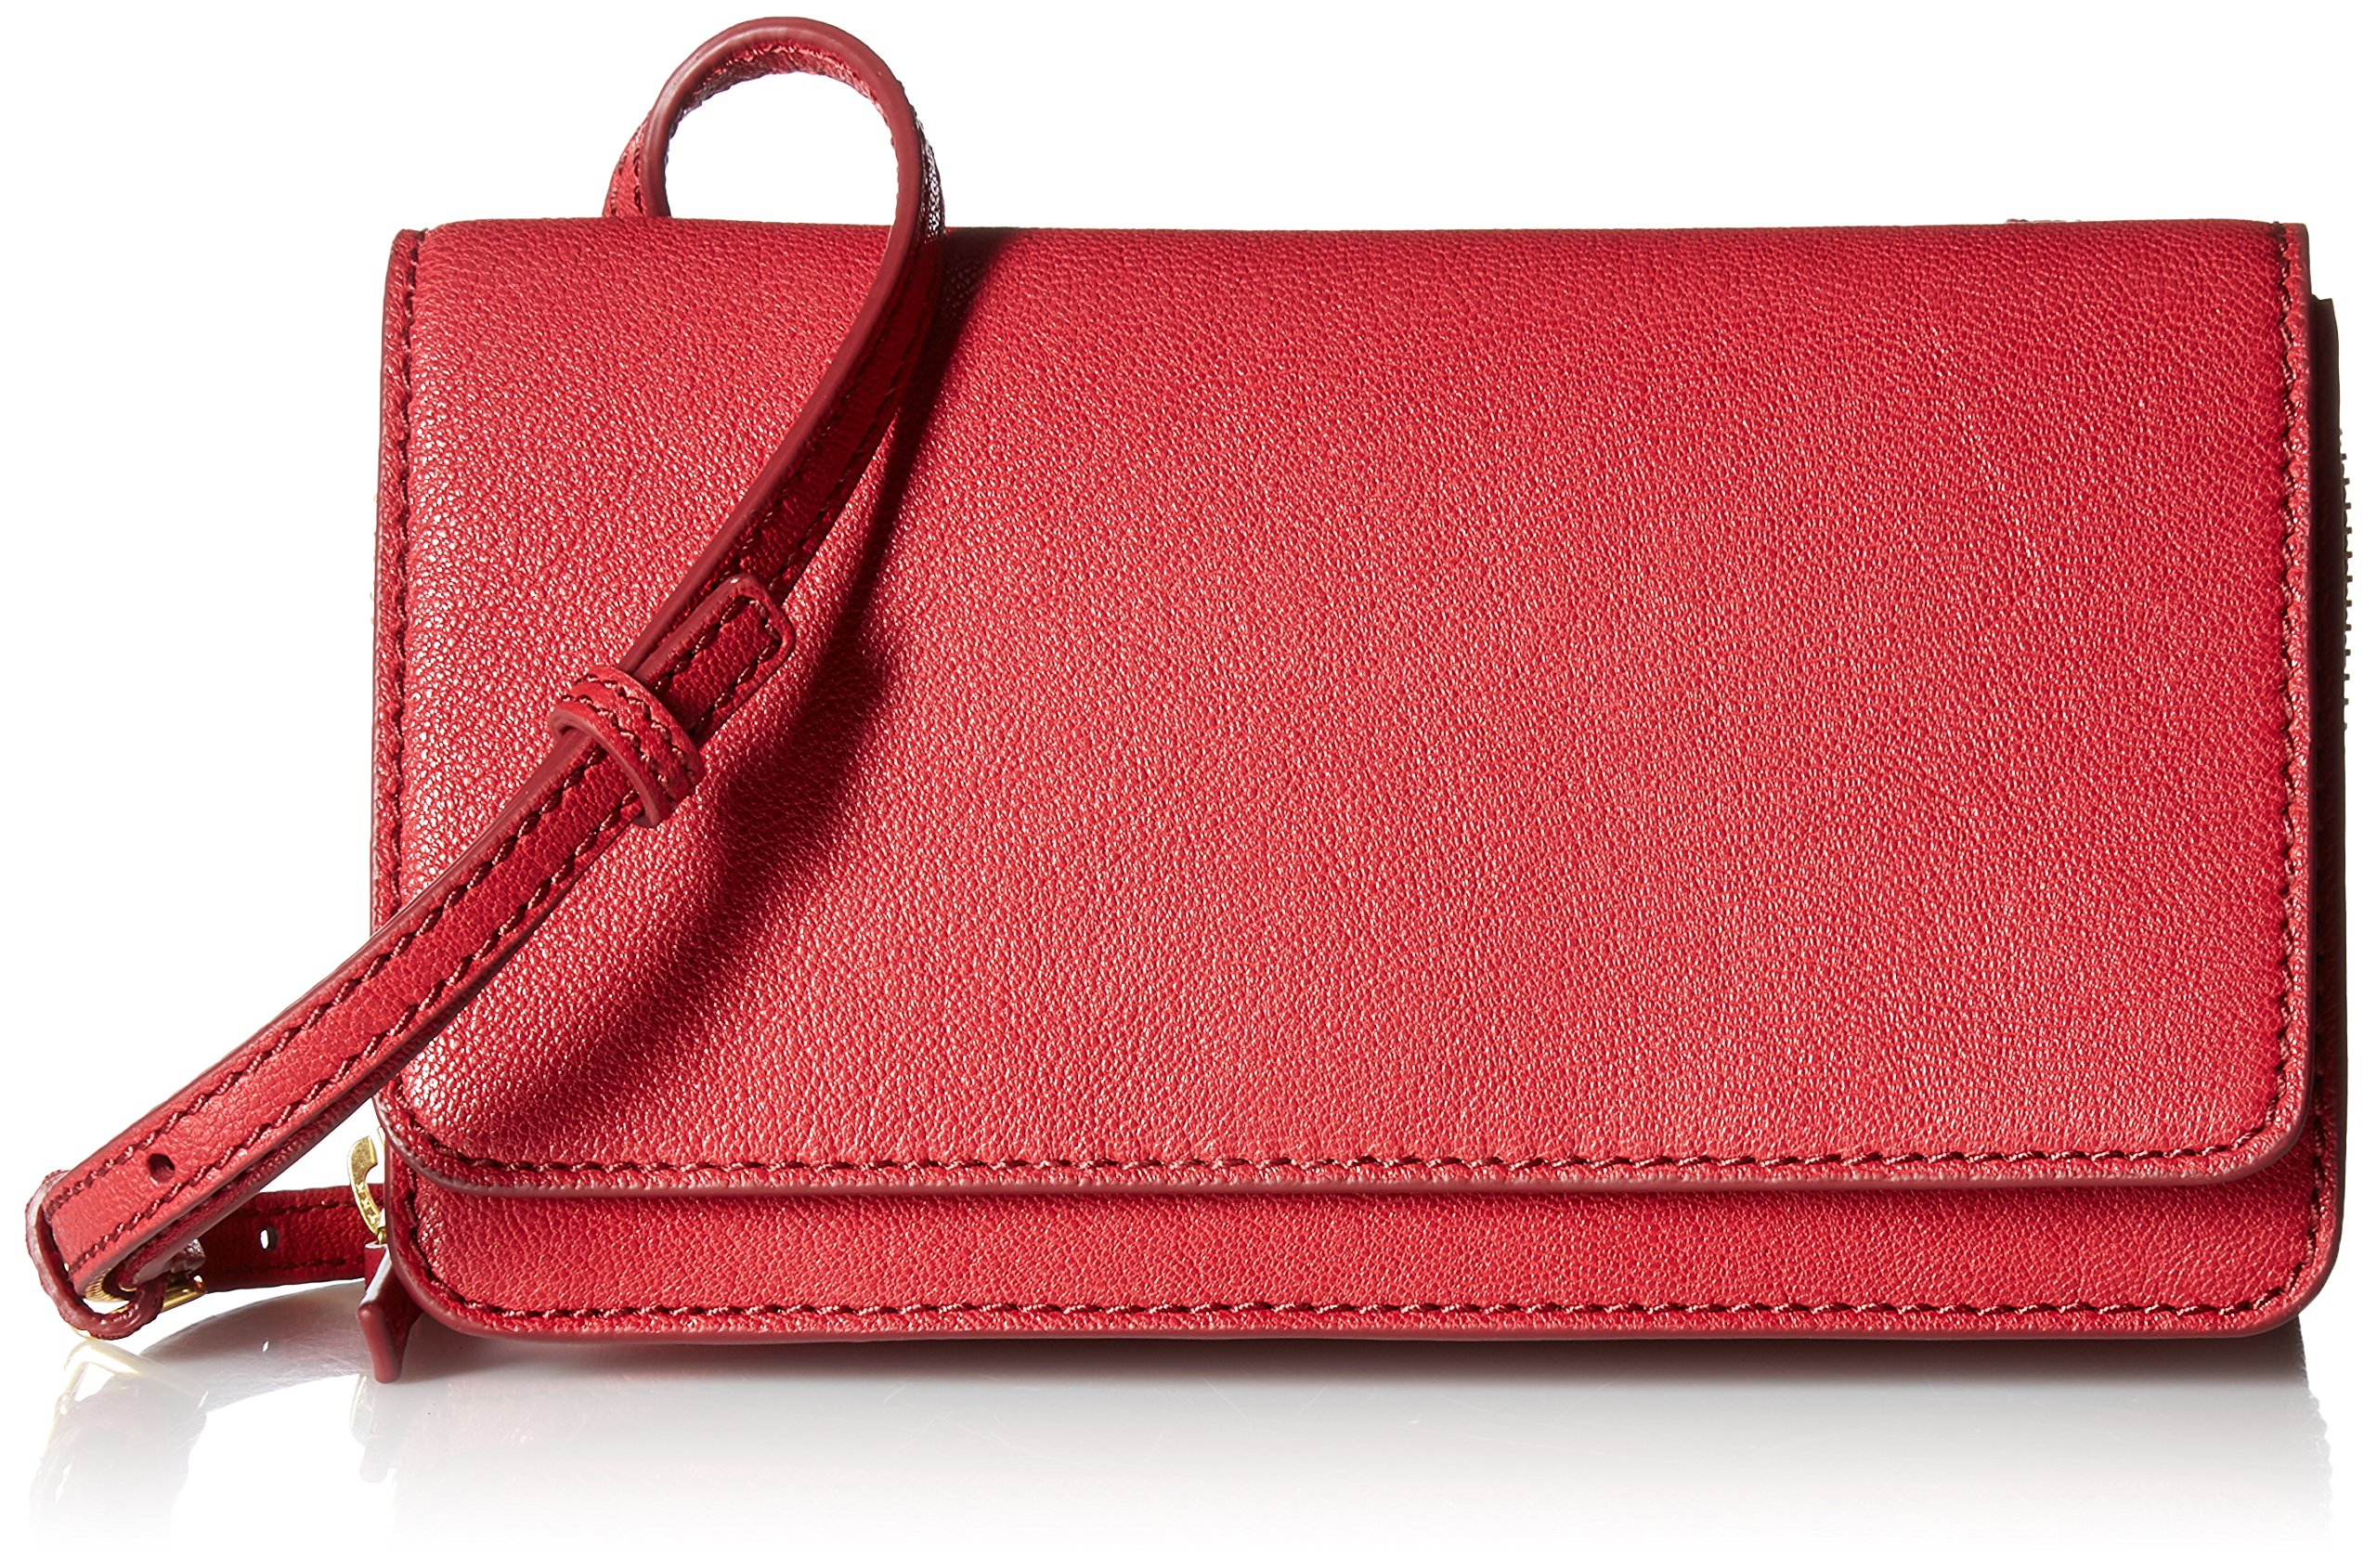 Fossil Women's Brynn Mini Bag, Red Velvet, One Size by Fossil